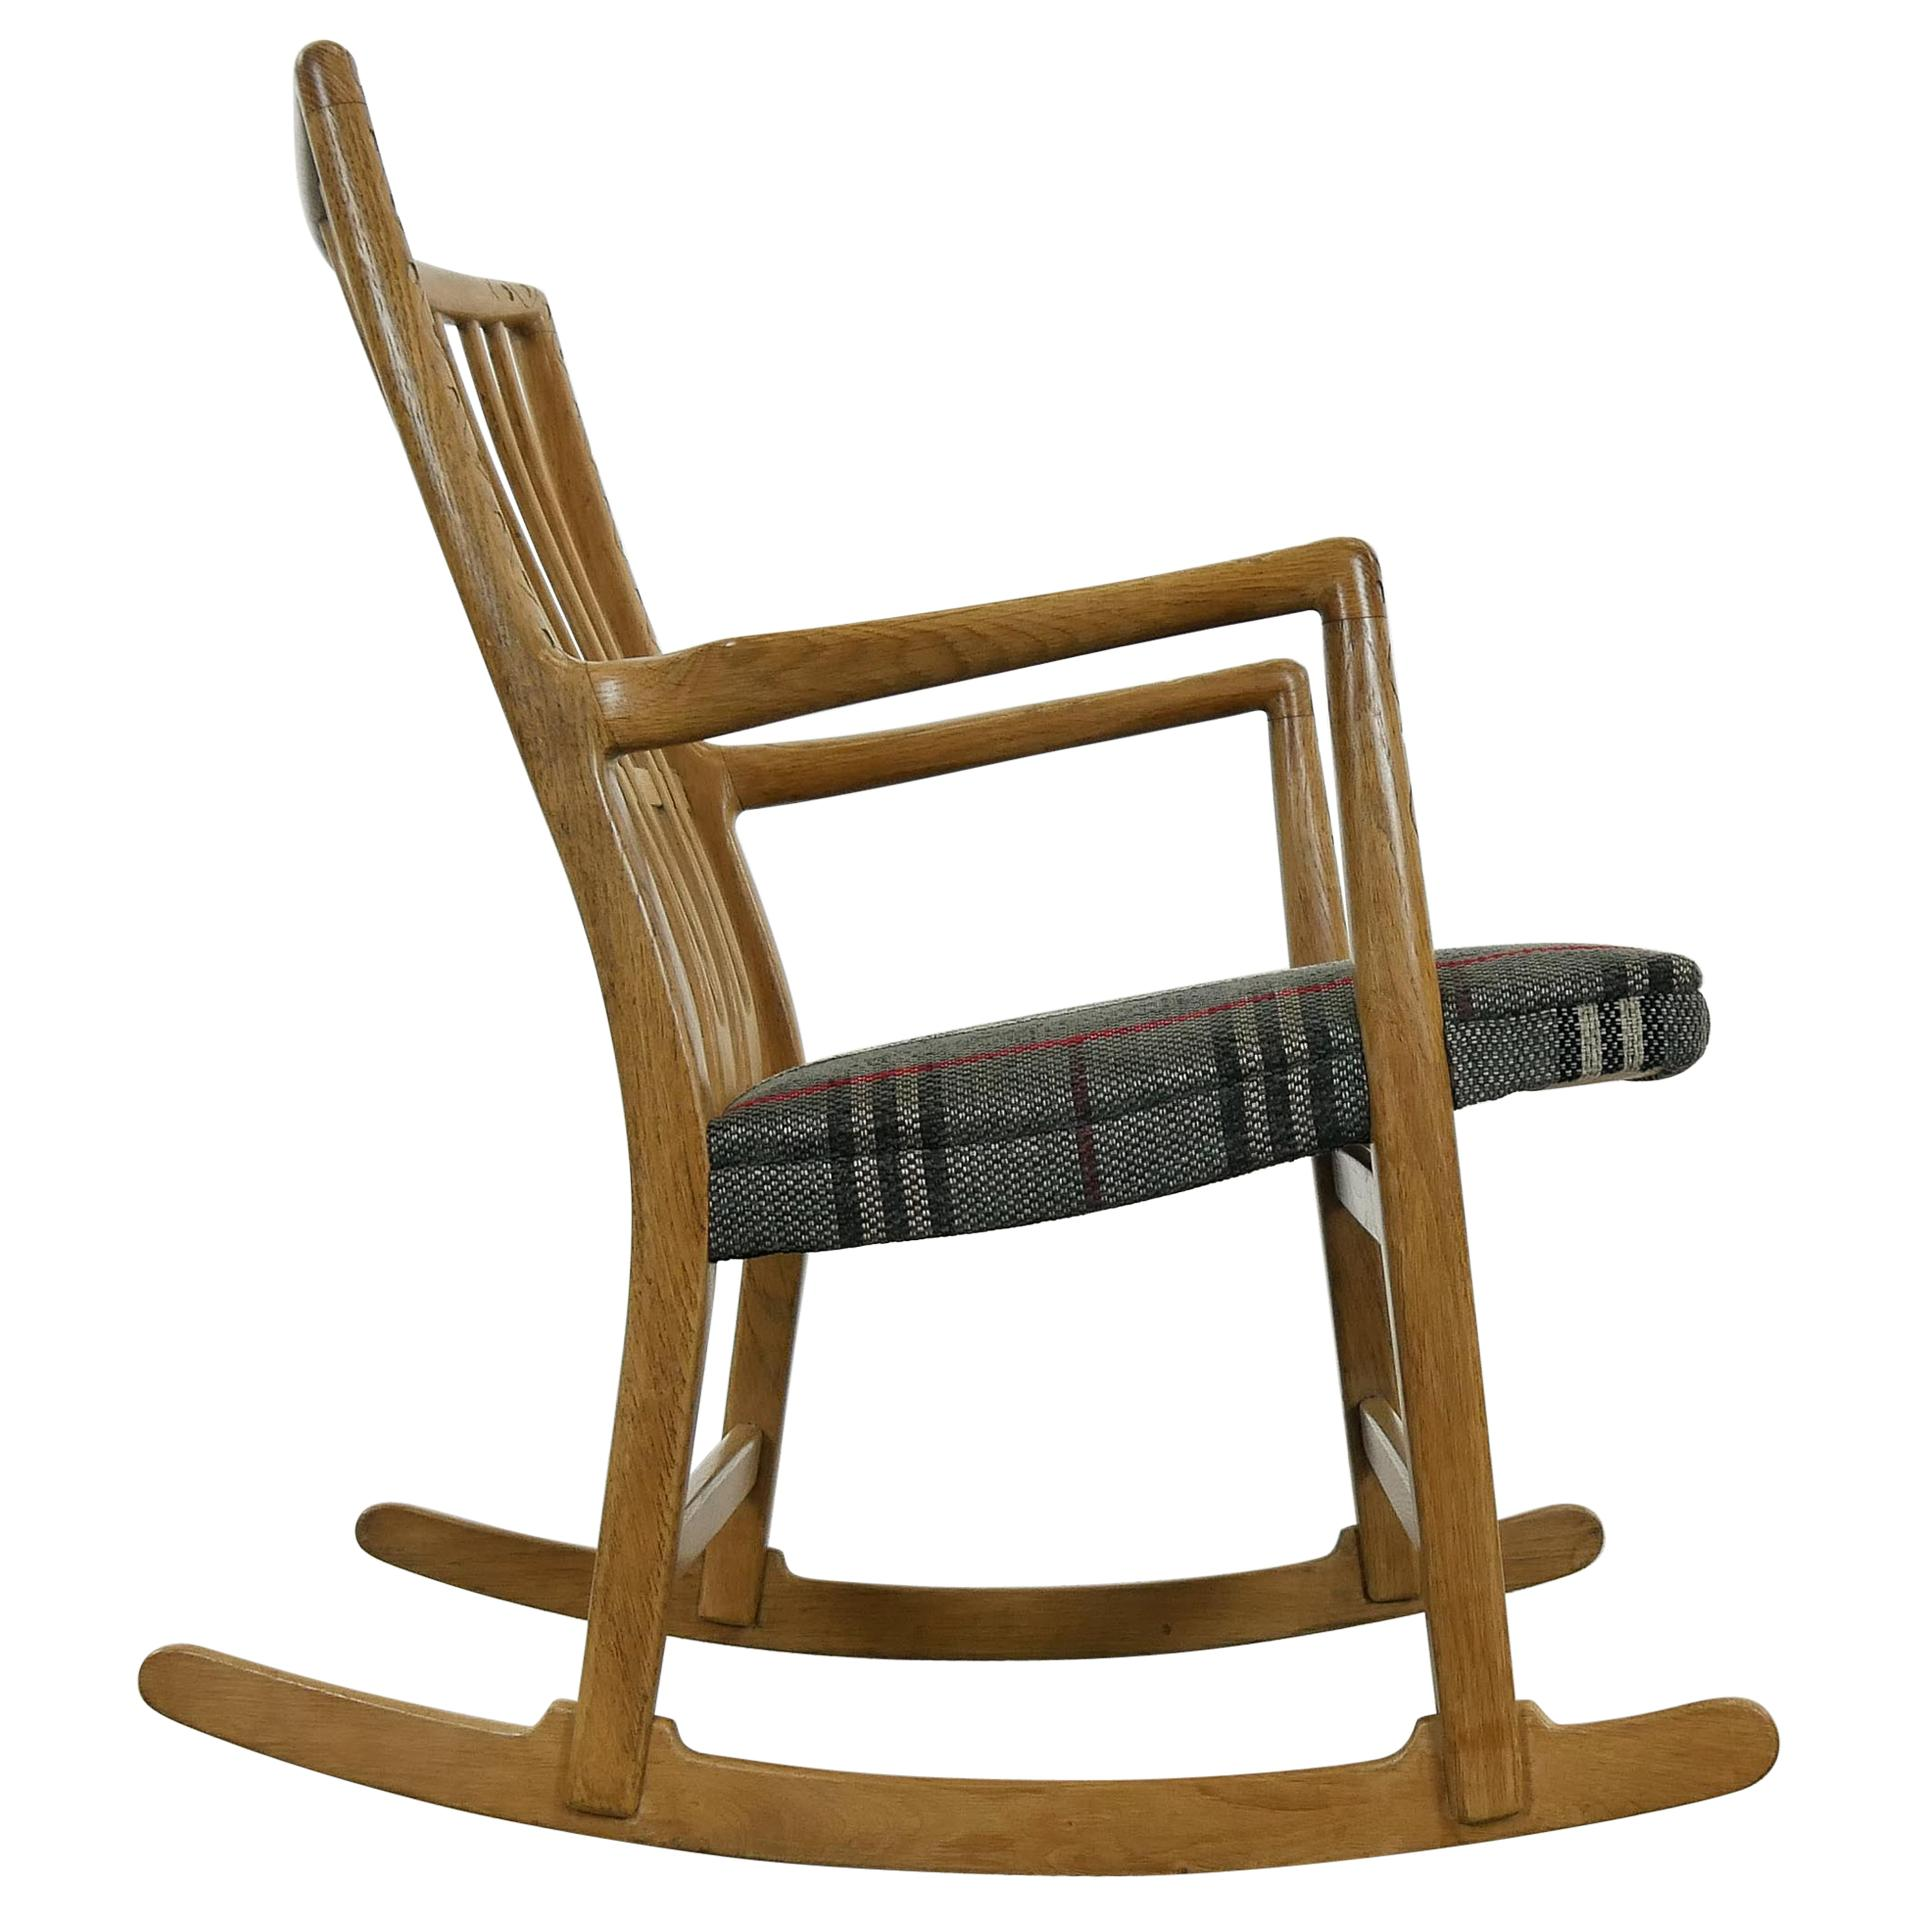 Rocking Chair ML-33 by Hans J. Wegner with Floral Carvings for Mikael Laursen